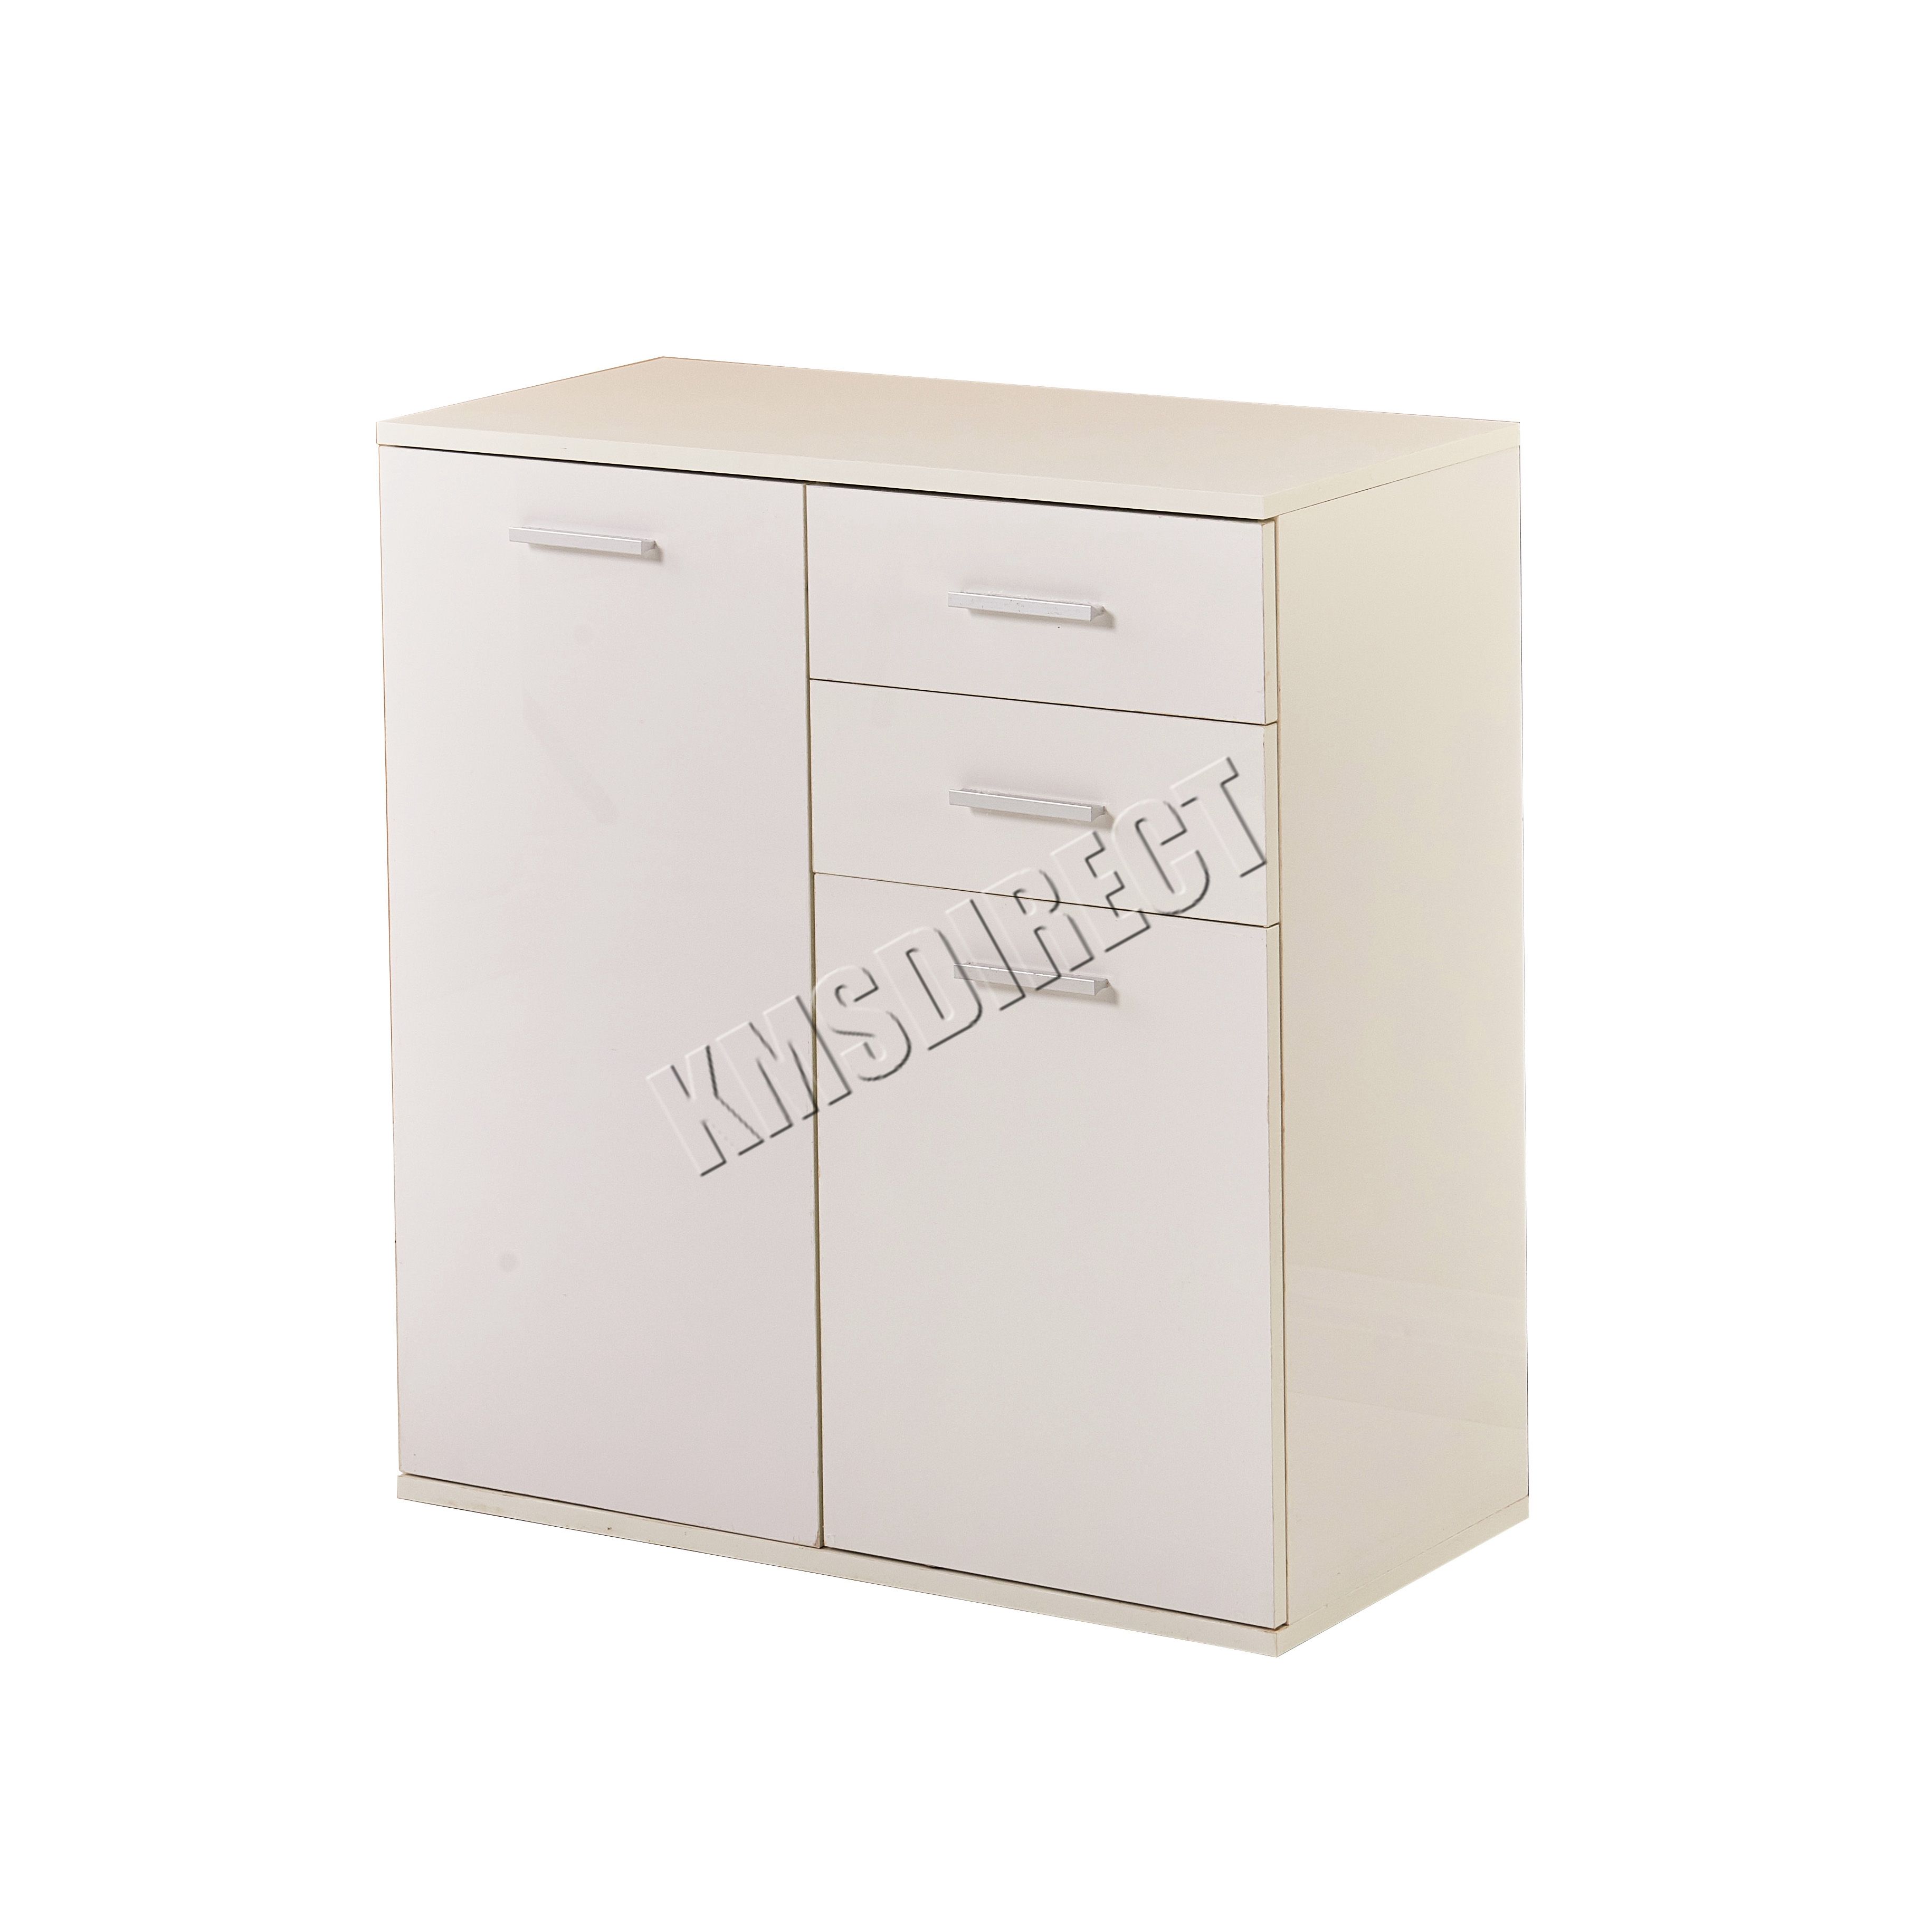 WestWood White High Gloss Cabinet Unit Sideboard 2 Drawers